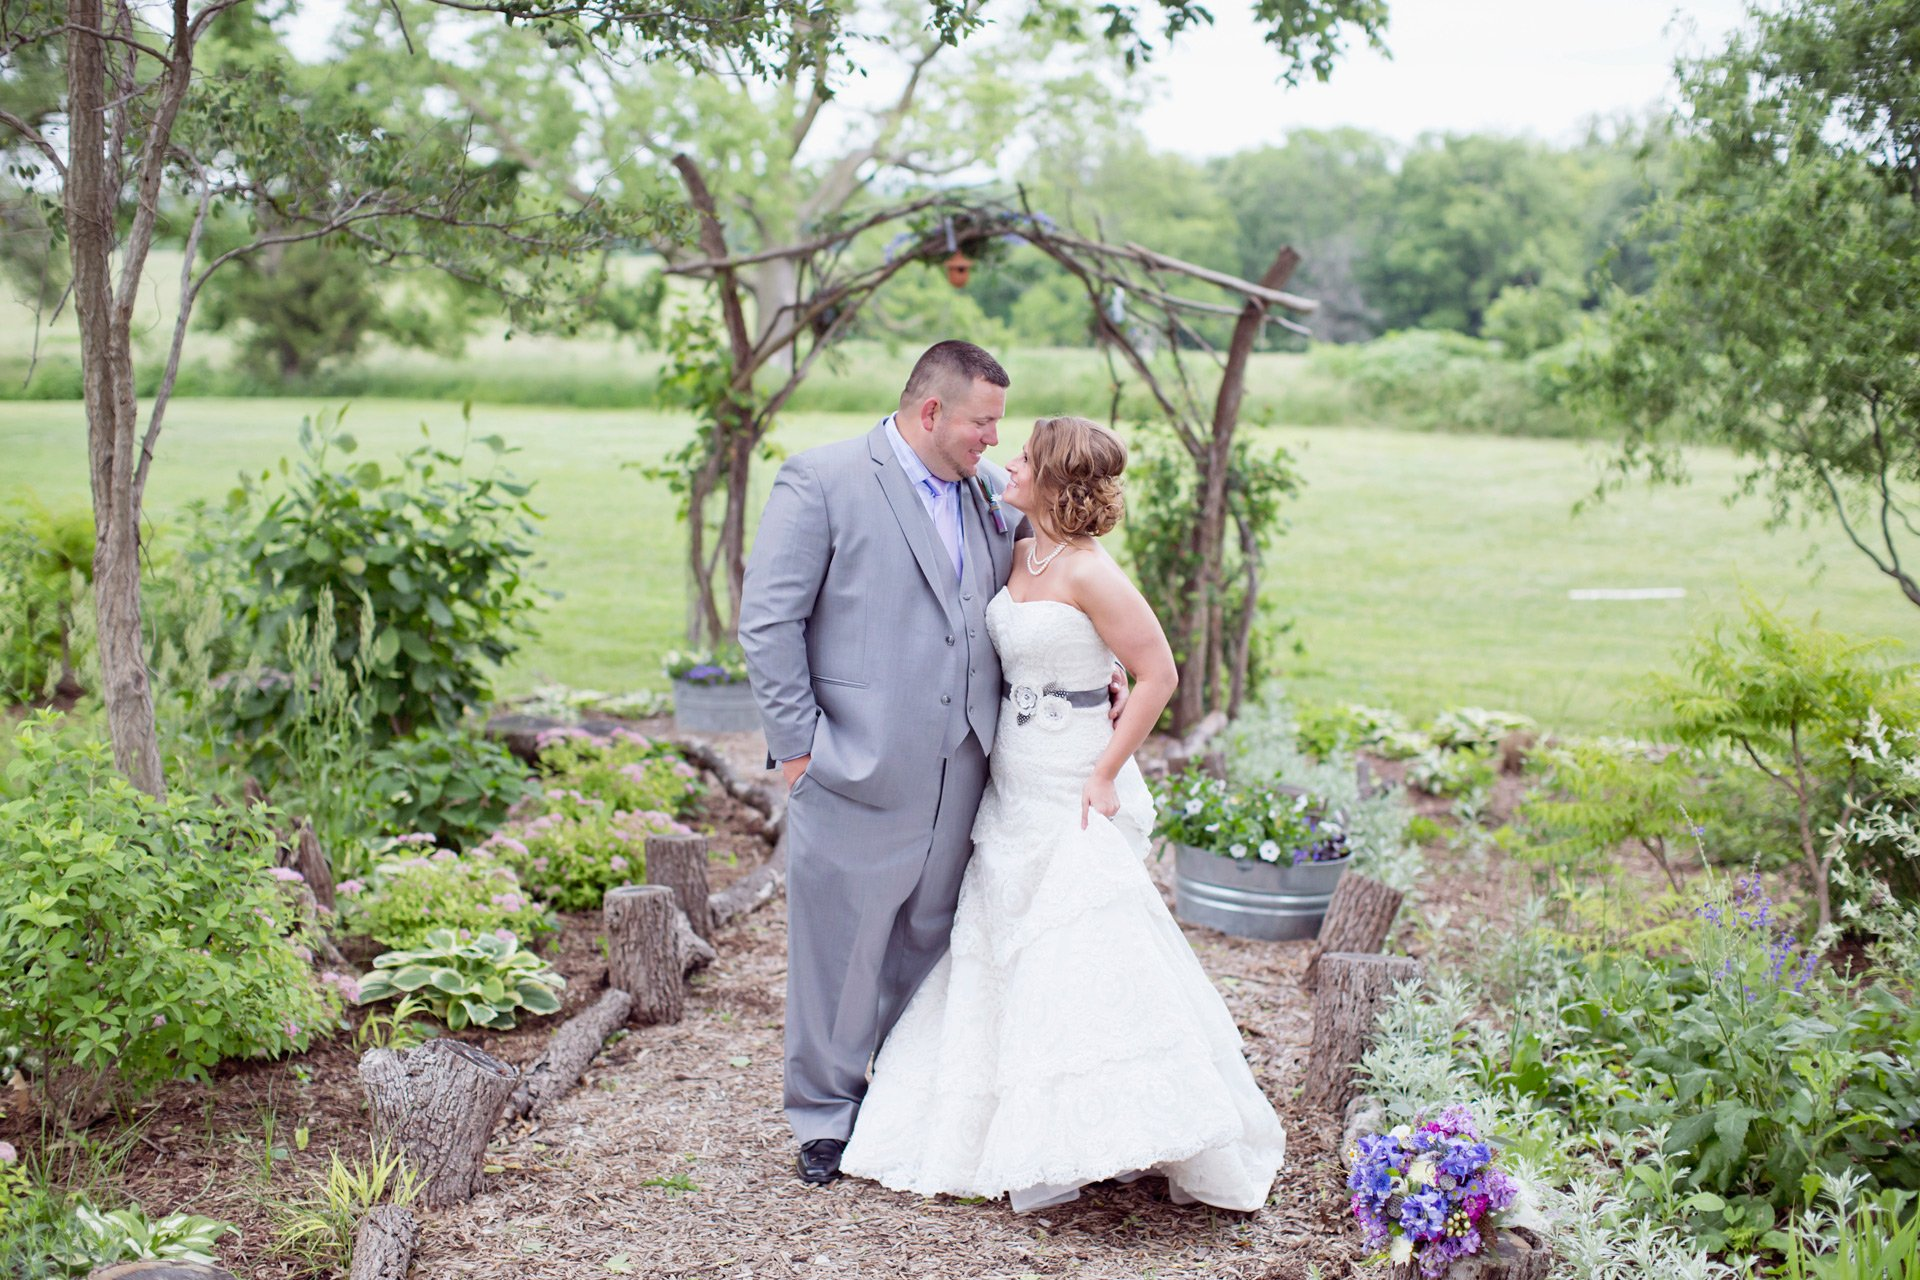 A bride and groom share a moment prior to their country barn wedding at Blue Bell Farm in Fayette, MO.